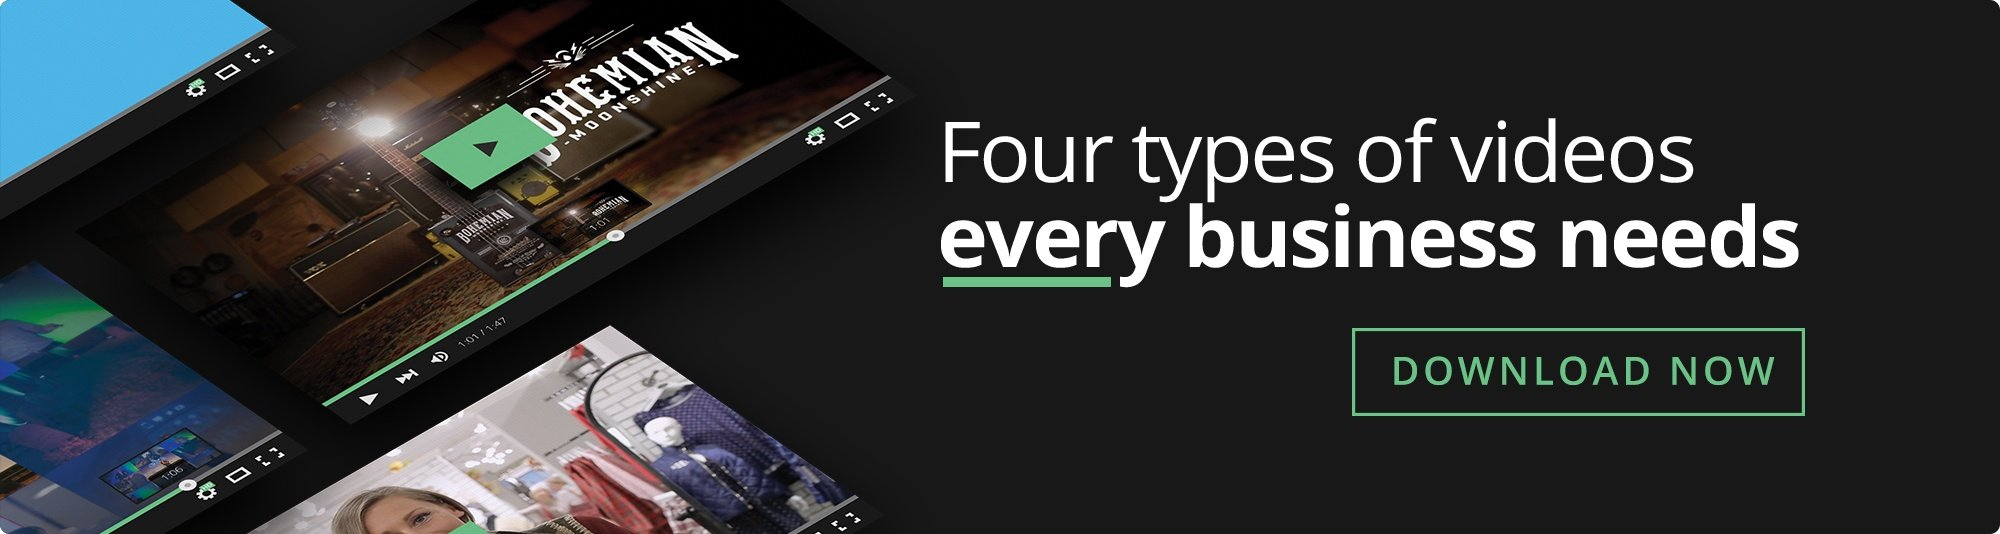 Four Essentials 2x Banner 1.jpg